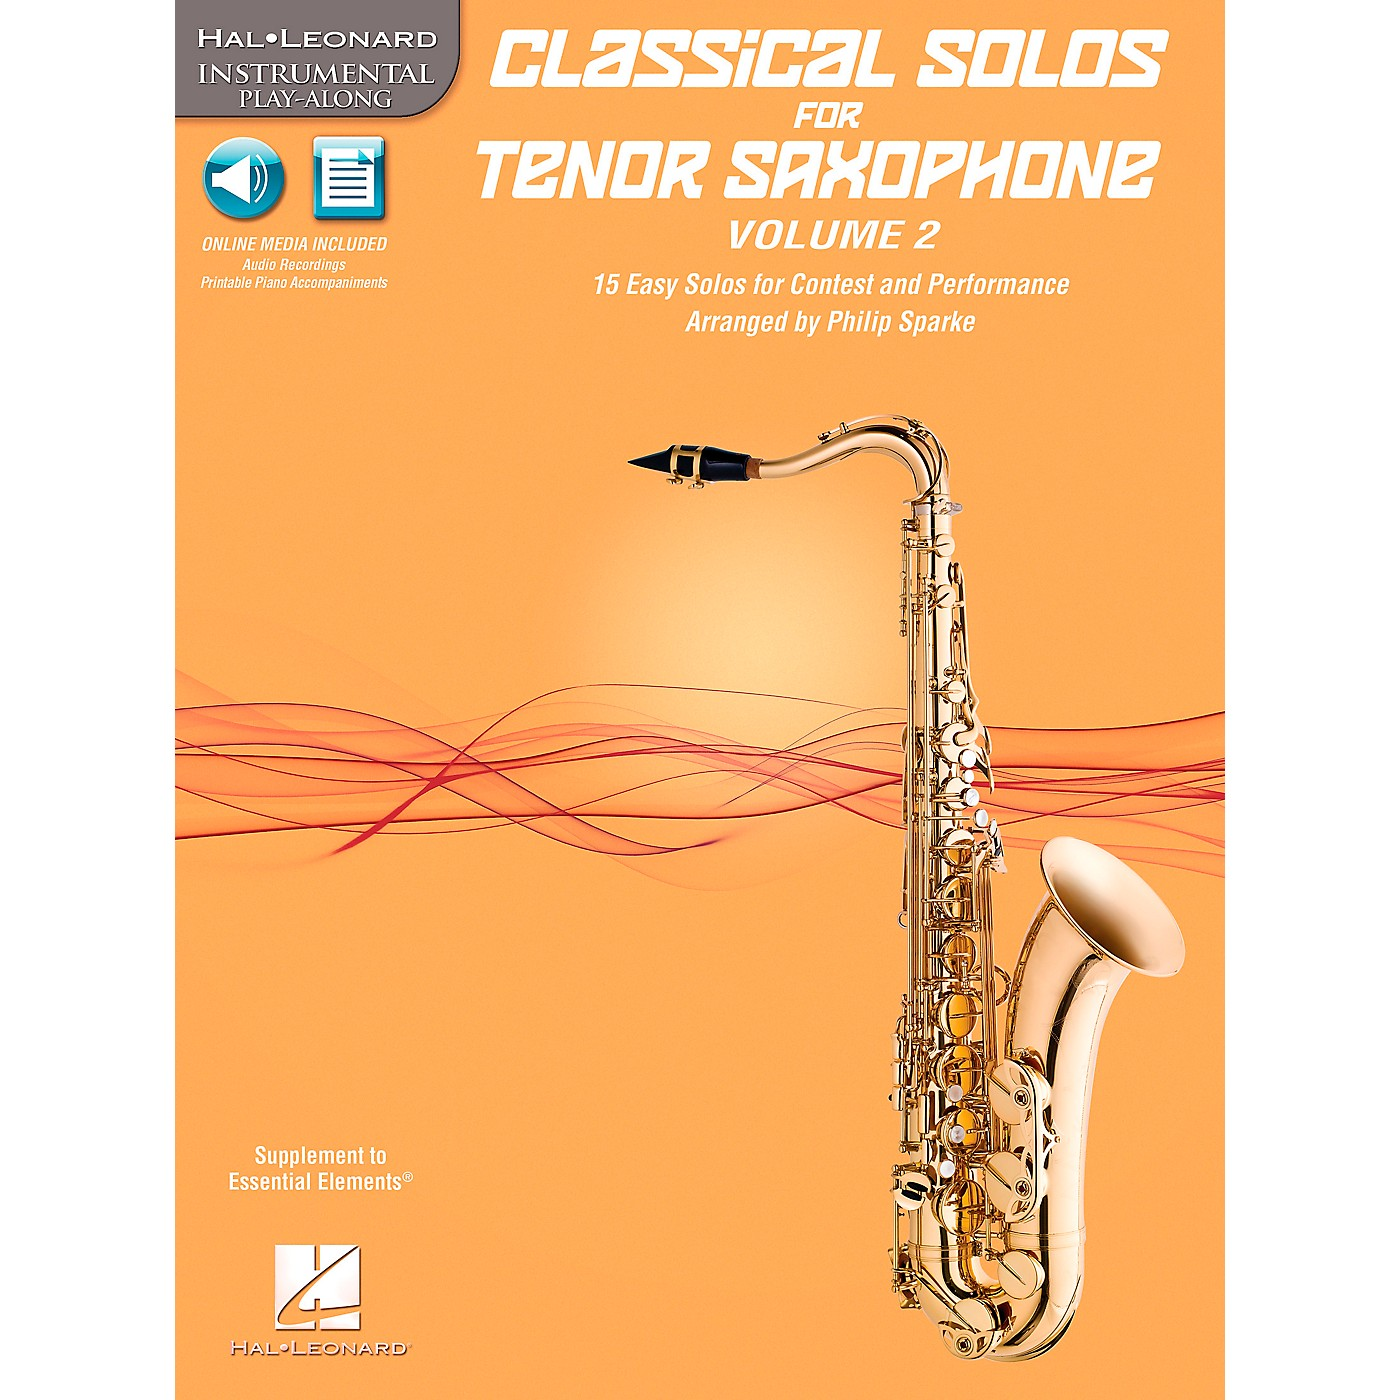 Hal Leonard Classical Solos for Tenor Saxophone, Vol. 2 Instrumental Folio Series Book with CD thumbnail